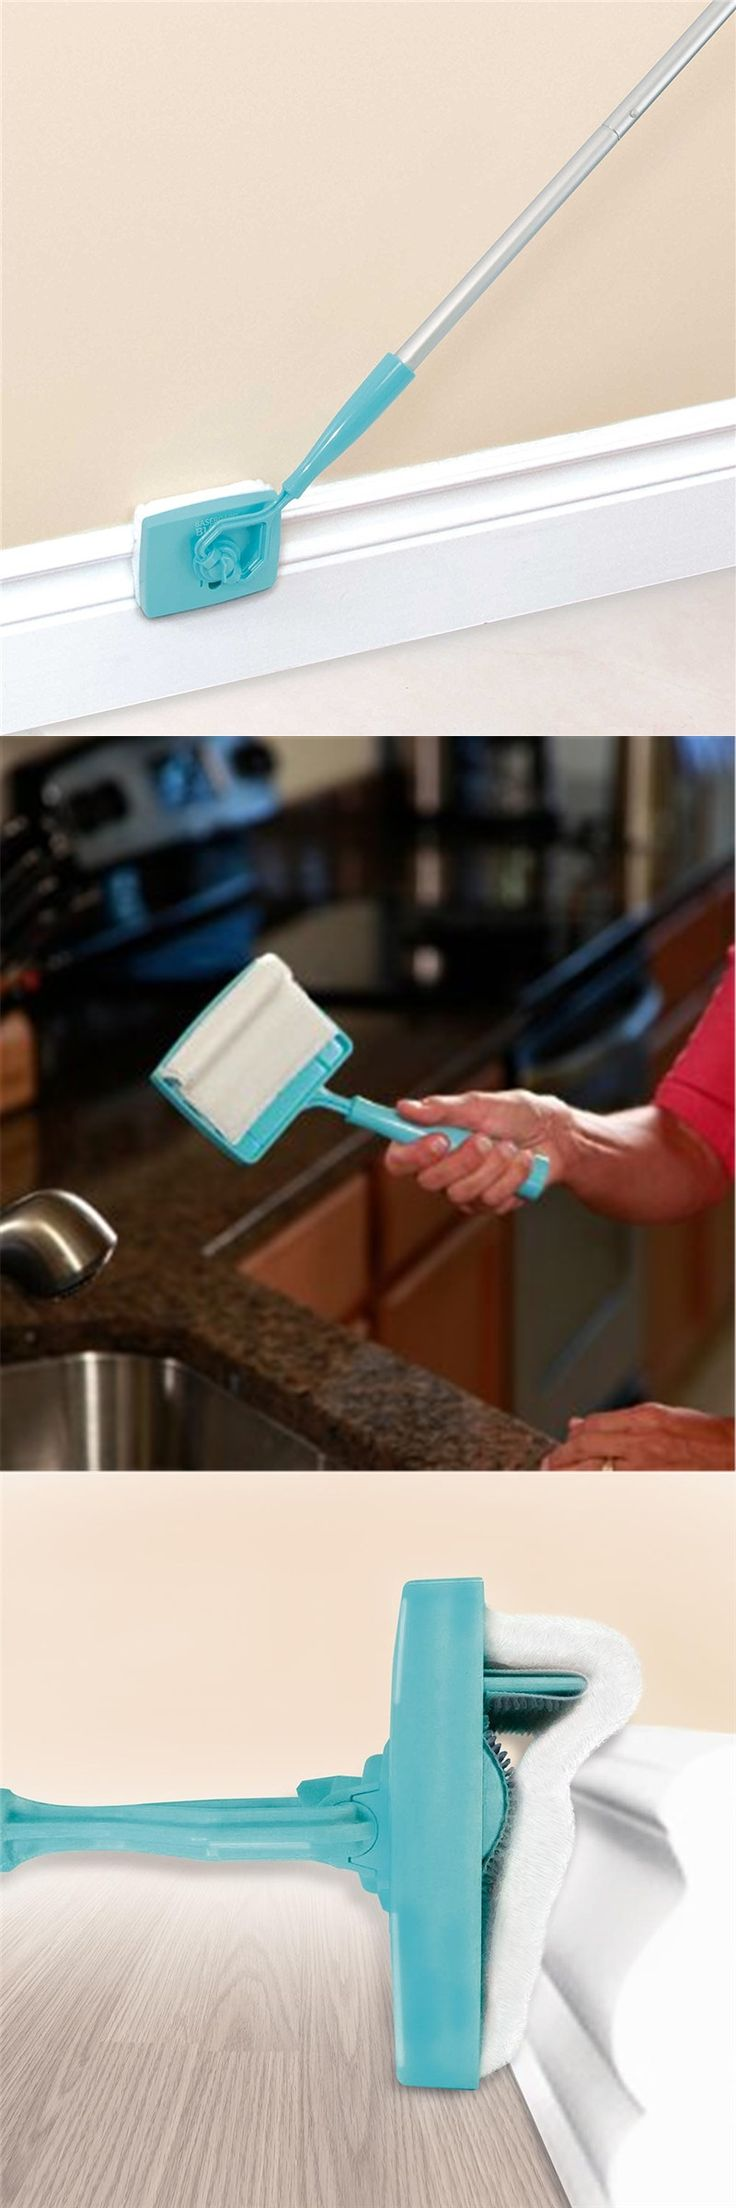 Baseboard Extendable Microfiber Duster Buddy 360 Degree Swivel-action Head Home Kitchen Multi-Use Clean Duster Tool